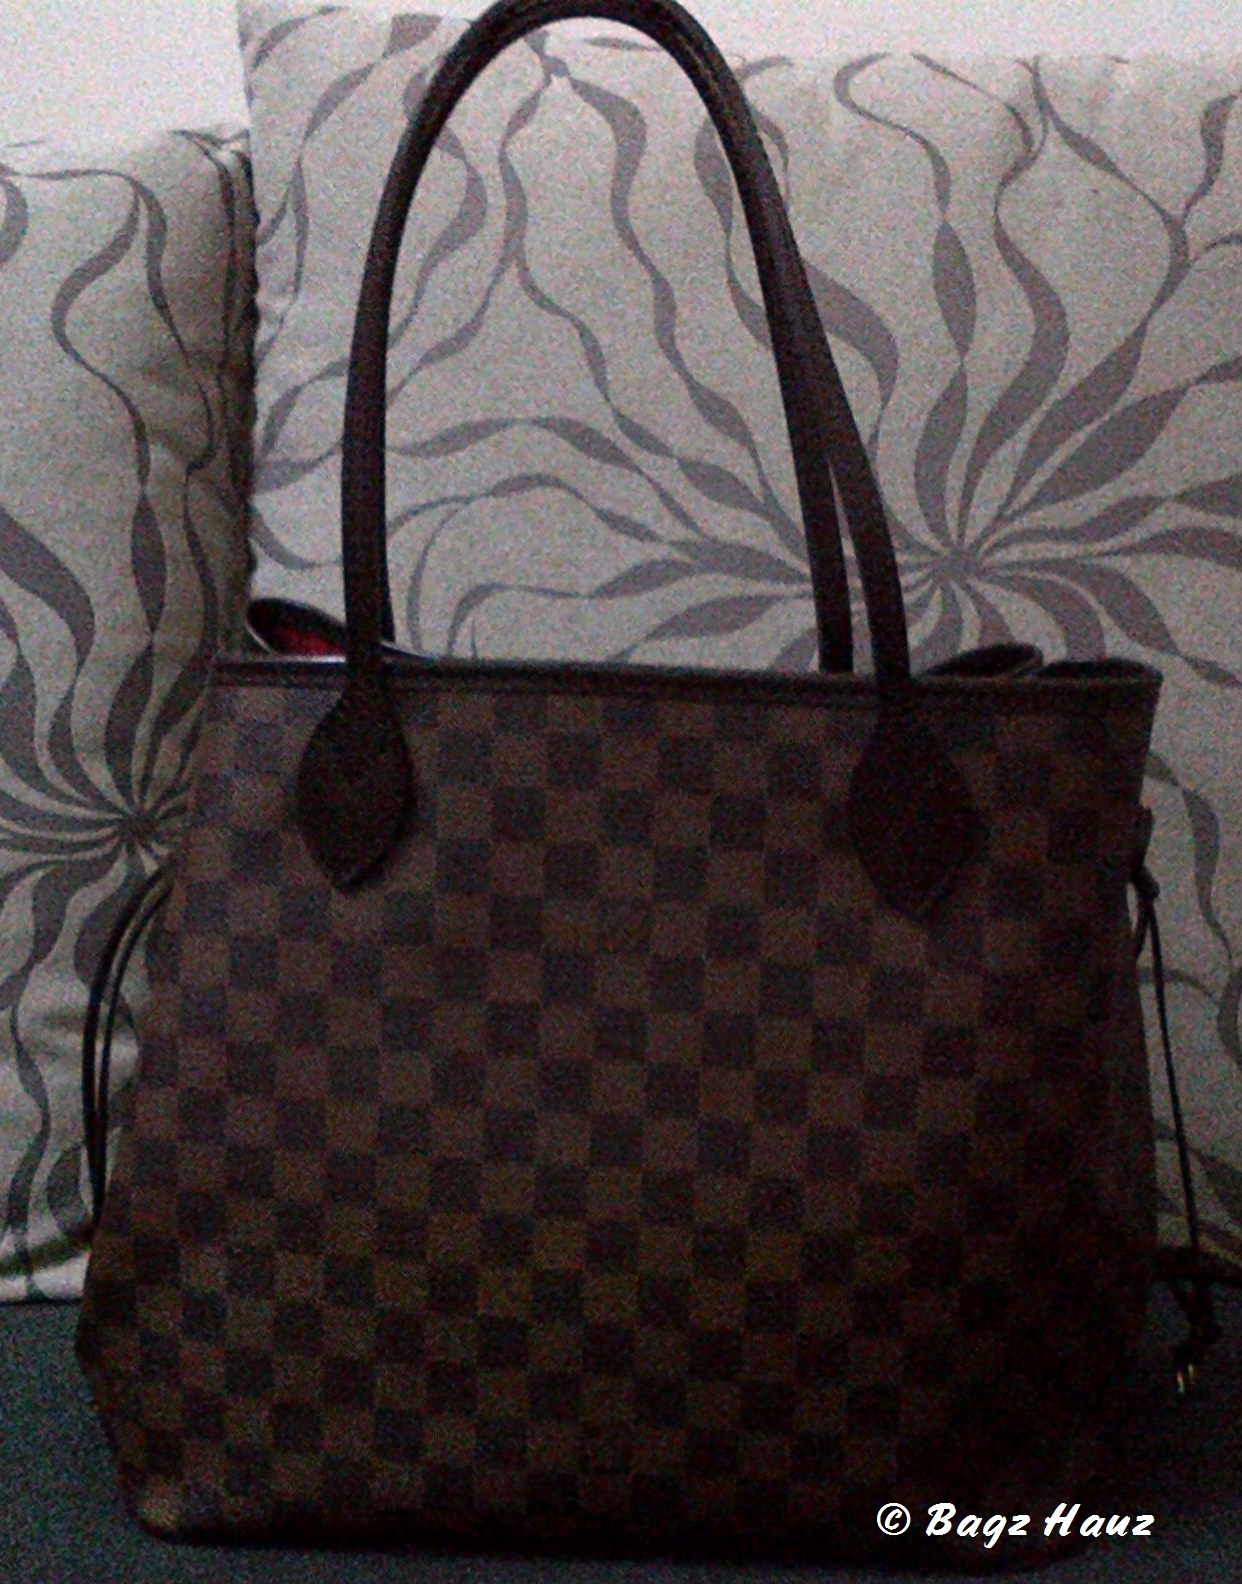 Bagz Hauz Fashion: ??PRELOVED?? - LOUIS VUITTON Neverfull MM ...